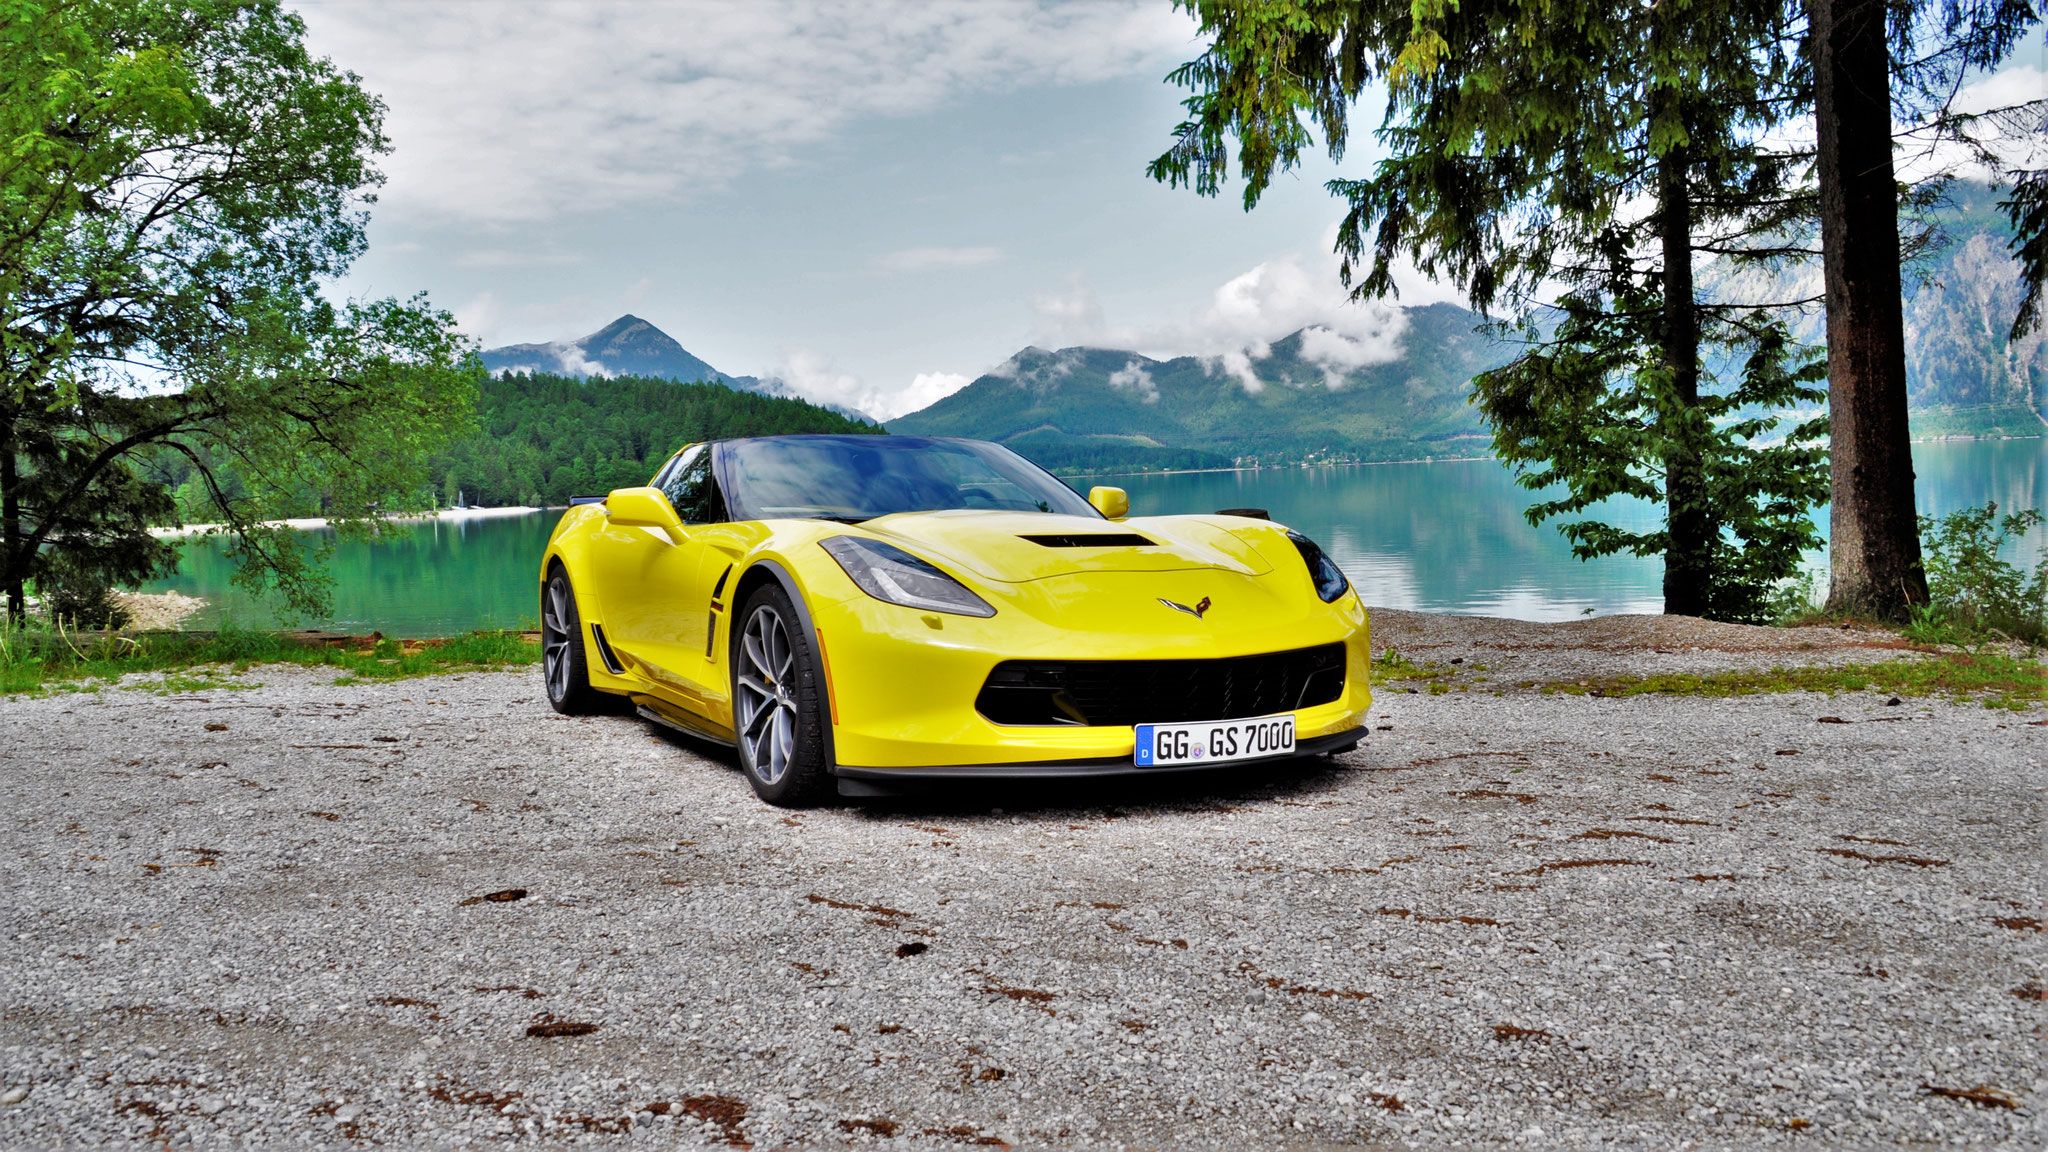 Chevrolet Corvette C7 Grand Sport - GG-GS-7000